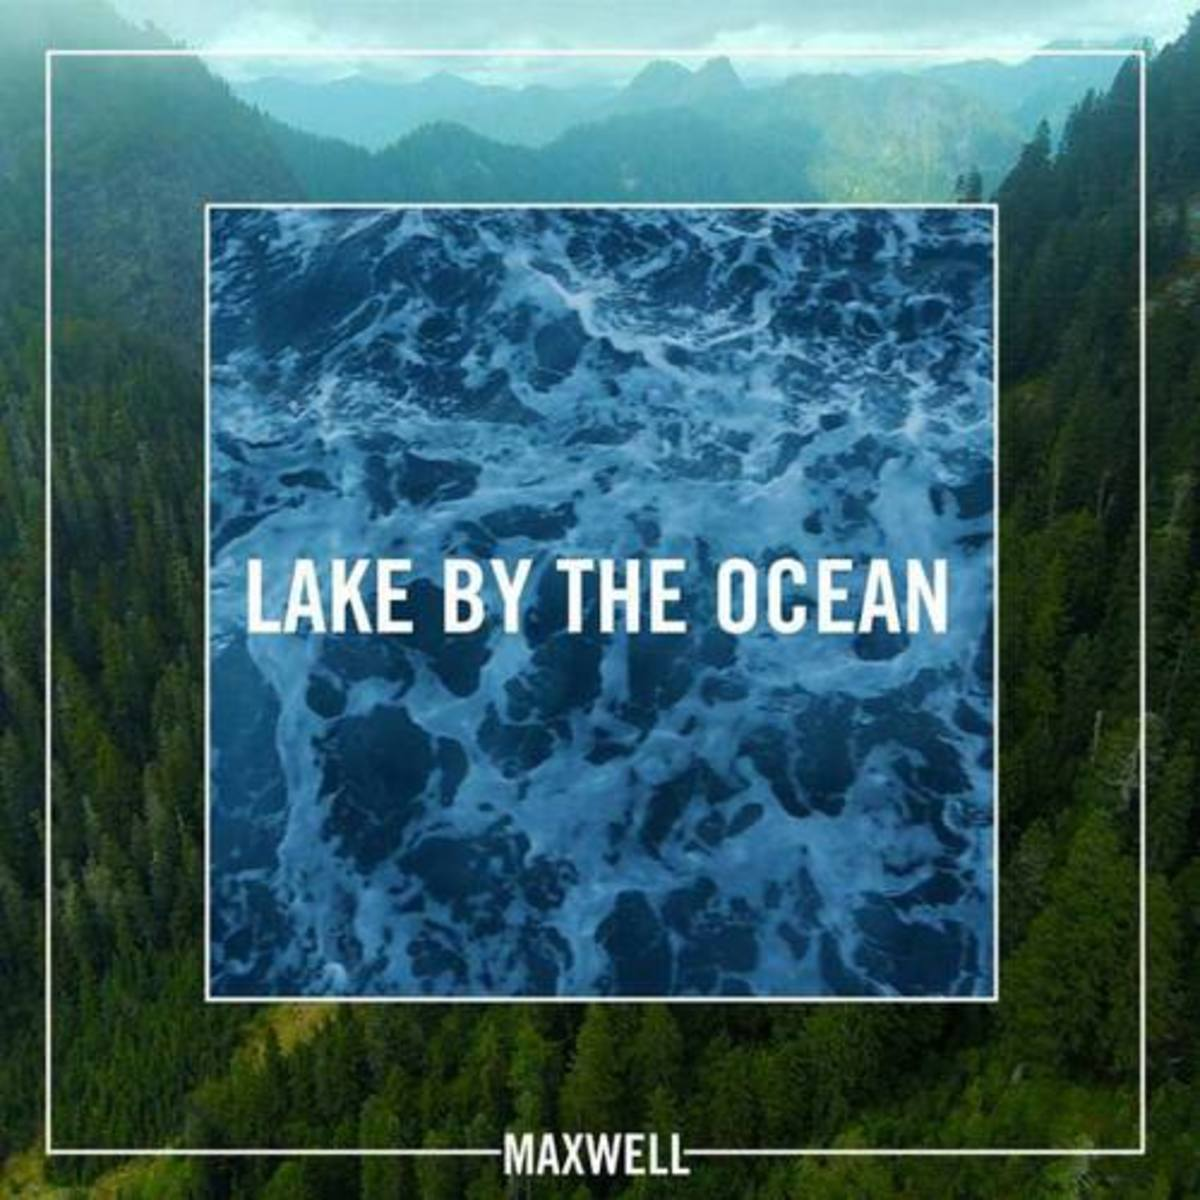 maxwell-lake-by-the-ocean2.jpg